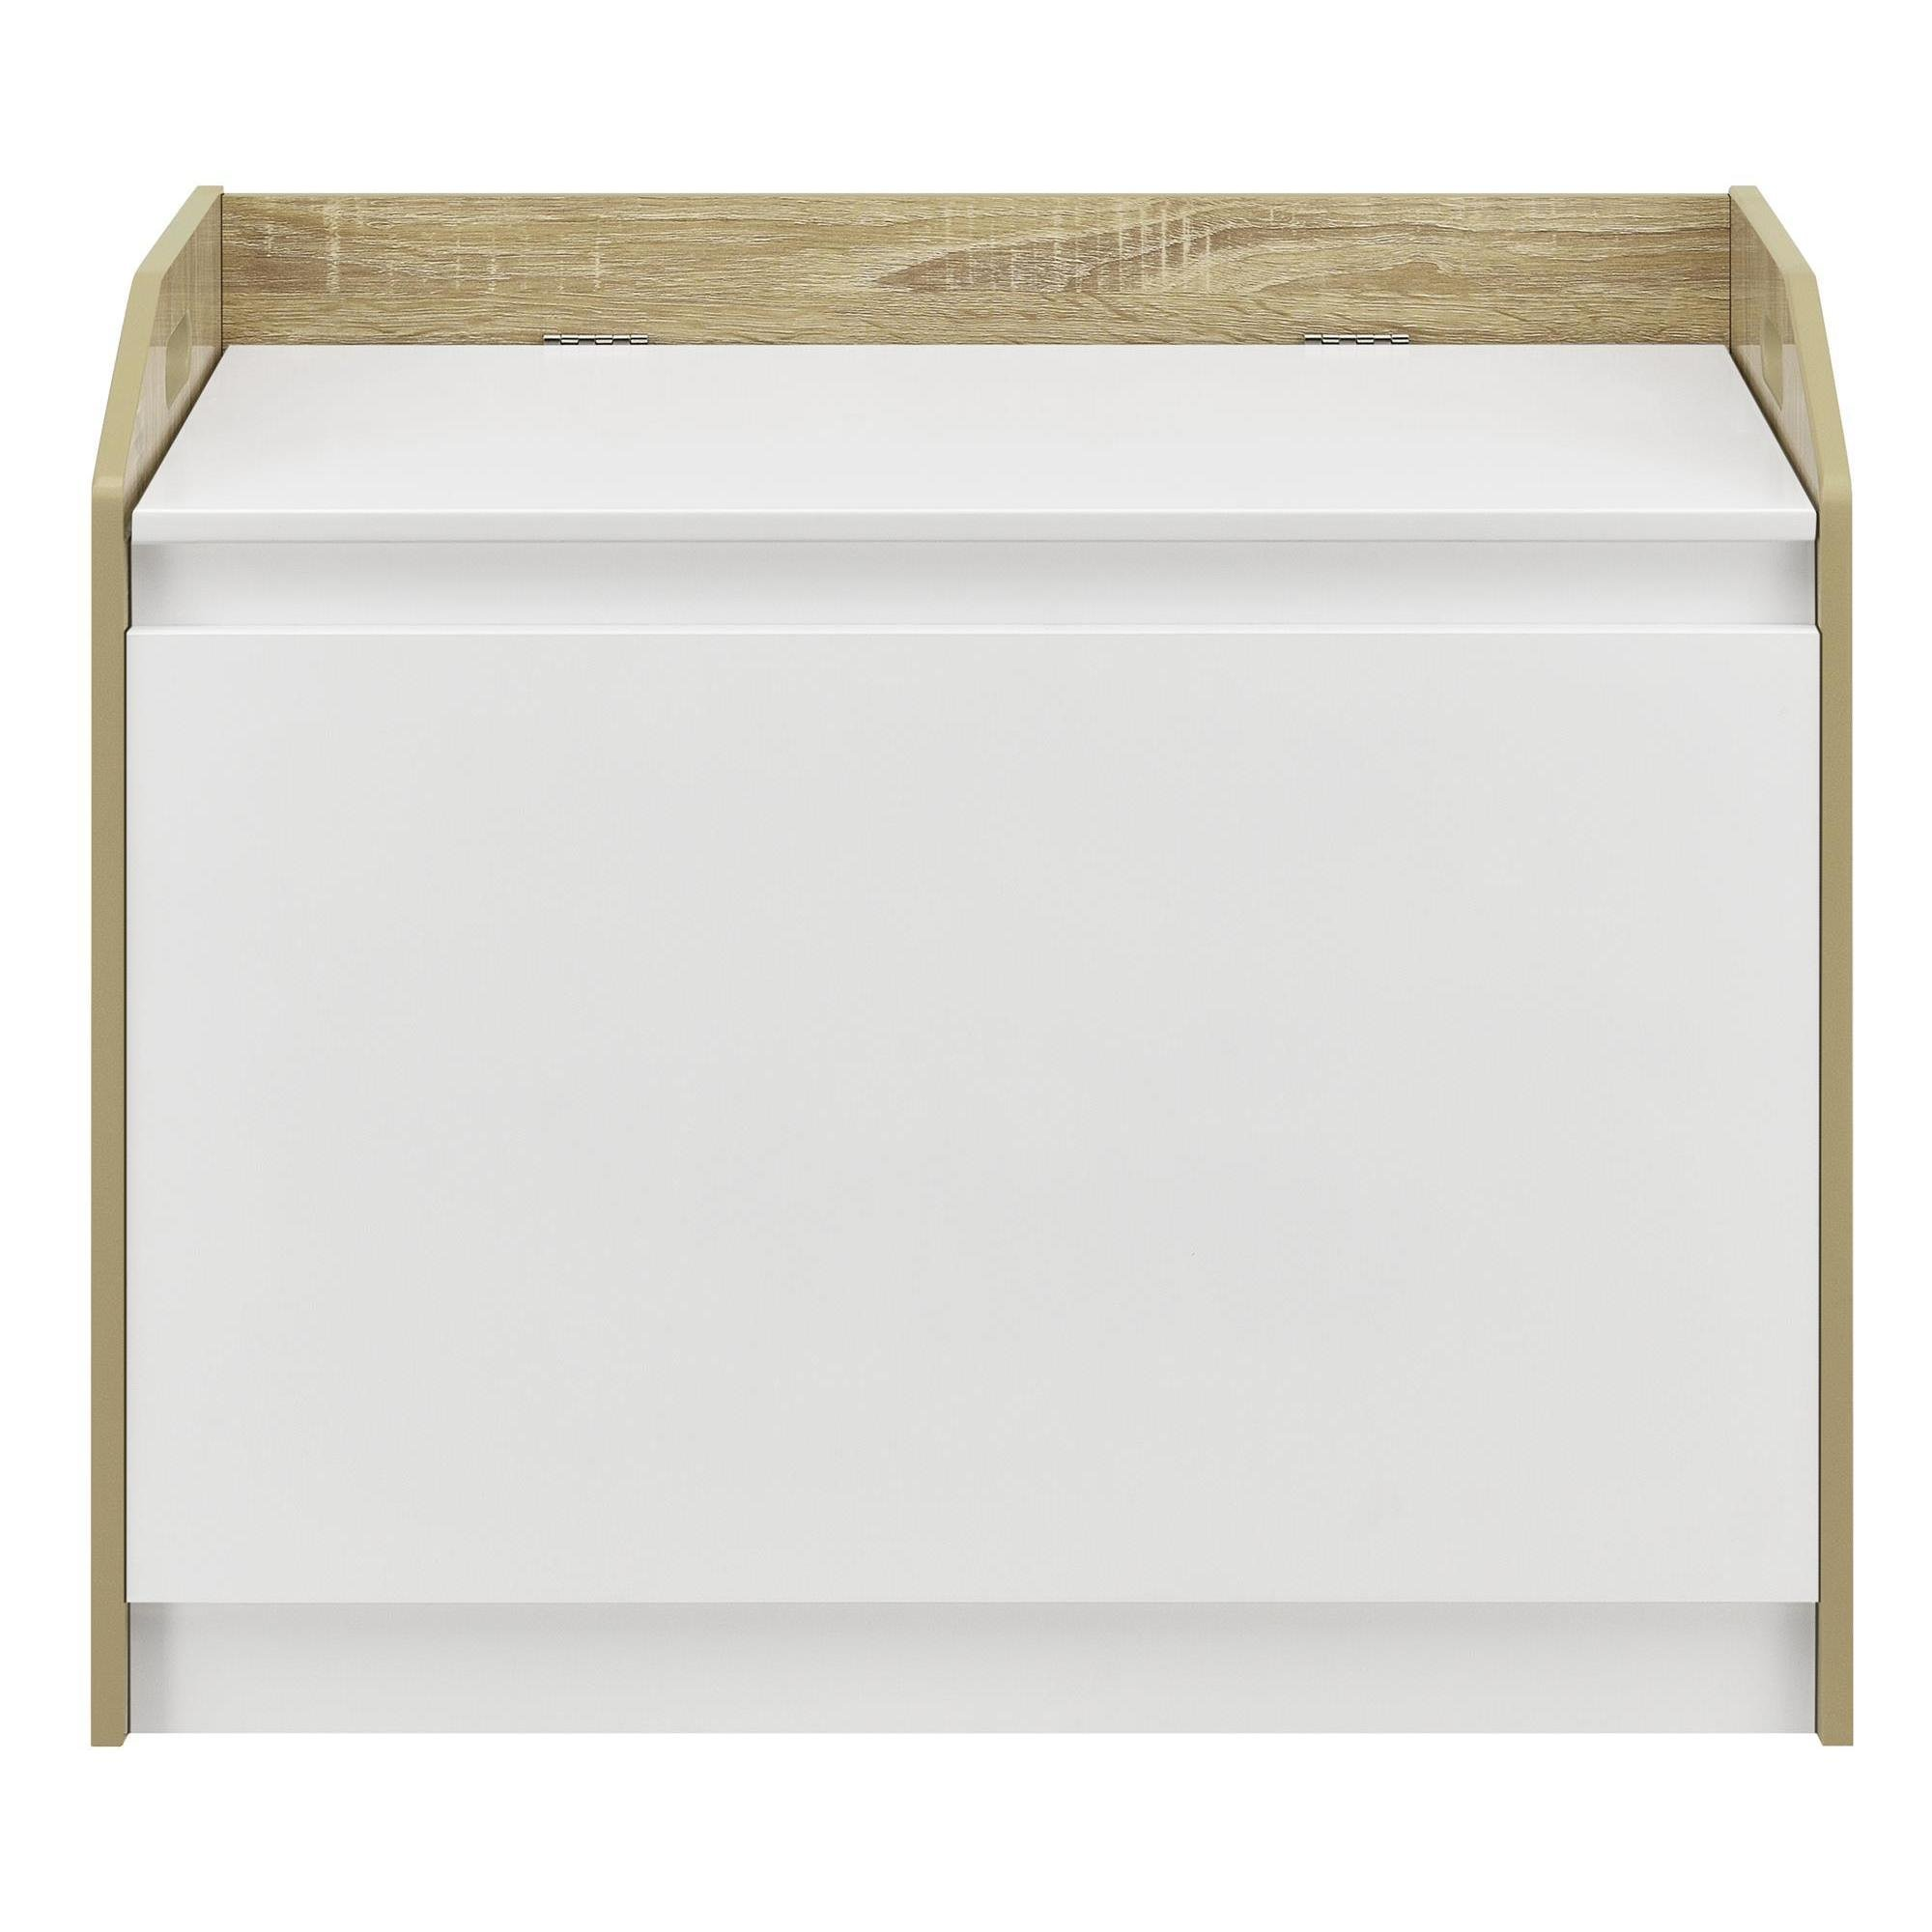 Durable Lowery Hamper in White and Light Brown Finish